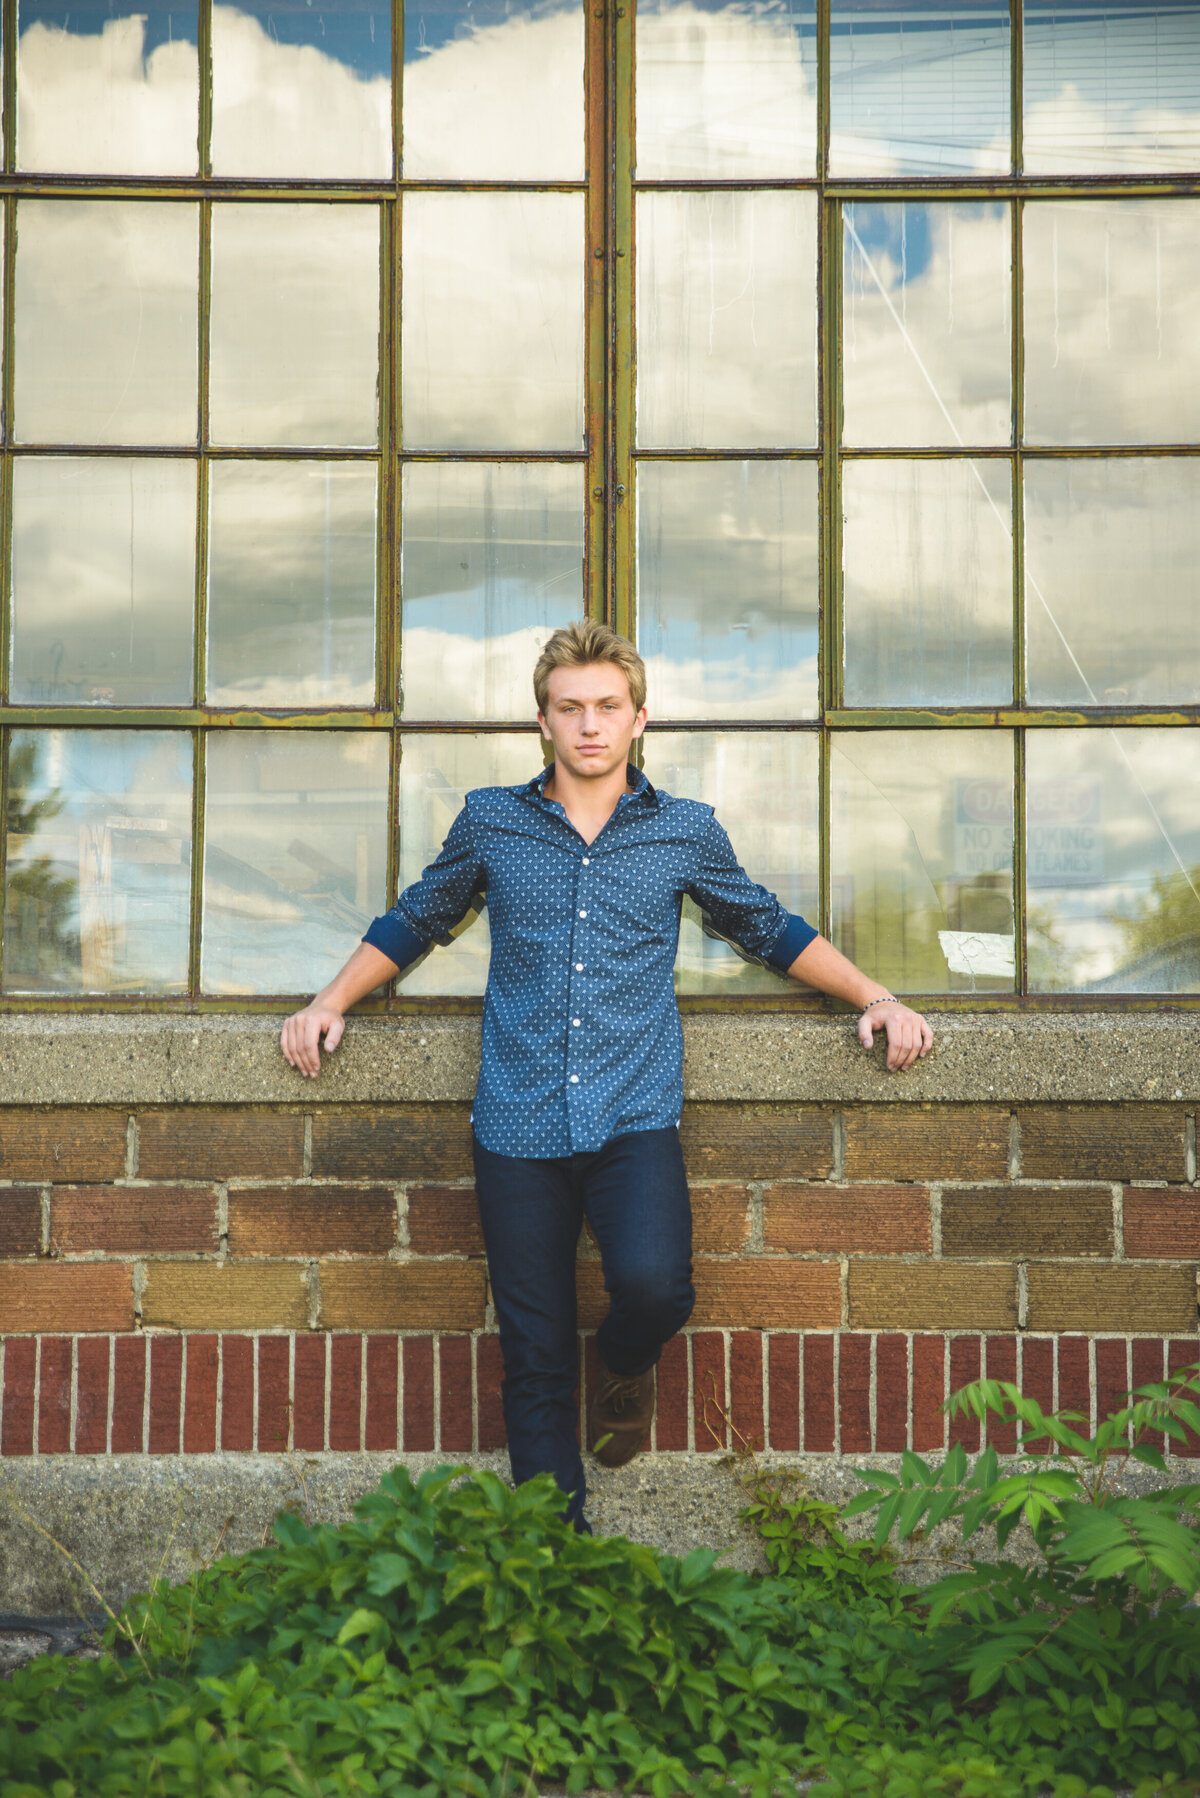 Grand-Haven-MI-Best-Industrial-Senior-Photography-10